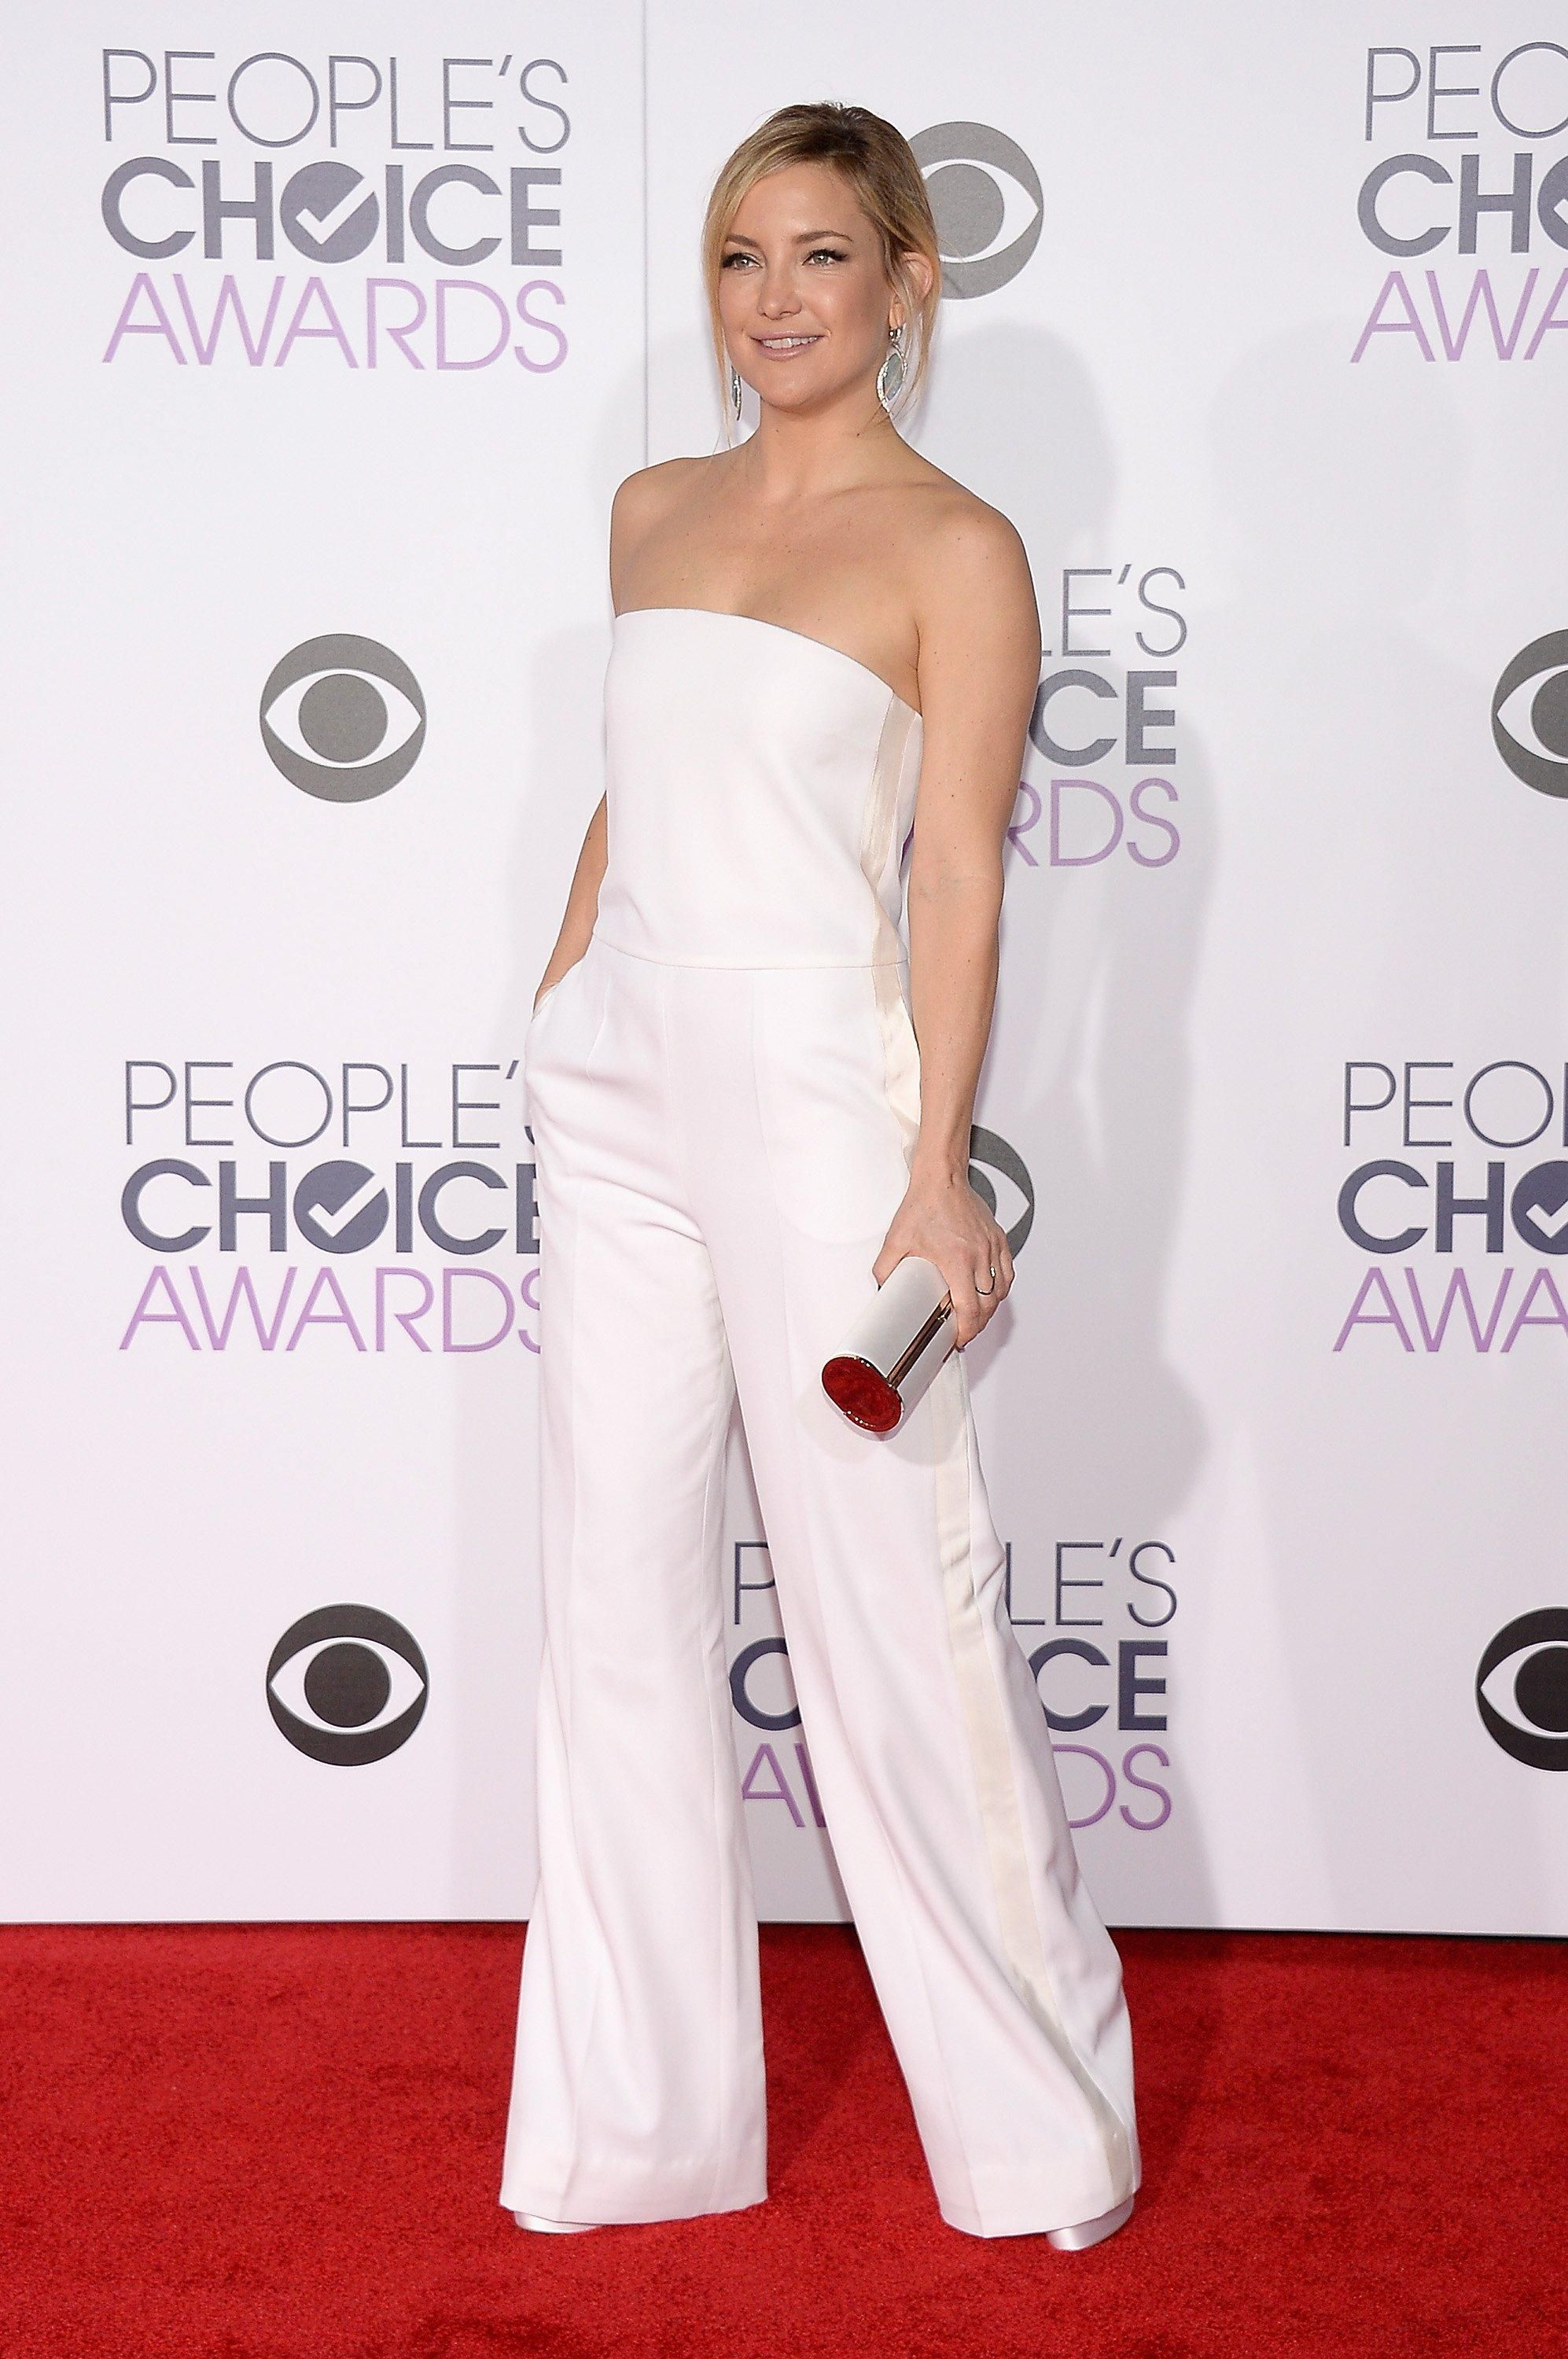 92d3df74548f People s Choice Awards 2016  Celebrity Fashion—Live from the Red ...